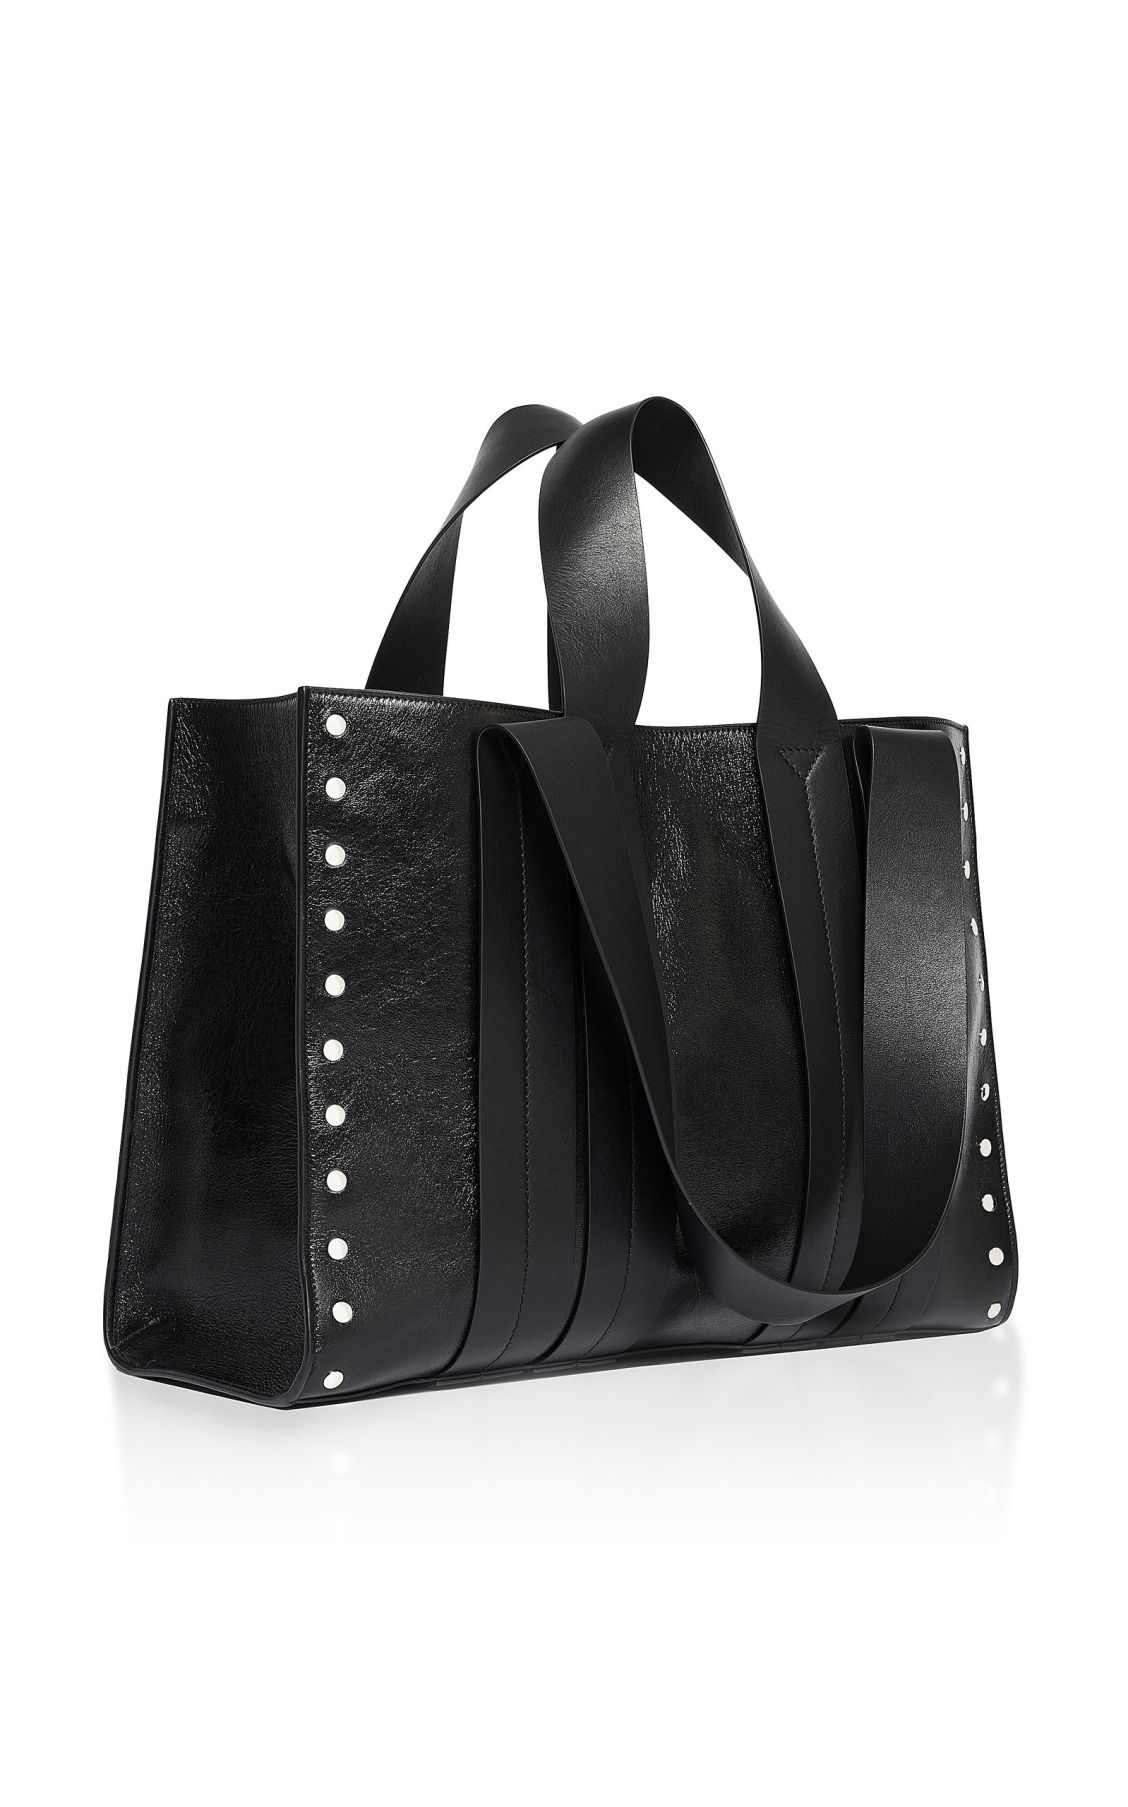 Constanza Large Tote with Studs by Corto Moltedo   Bags   Pinterest ... 55f60a4a4df